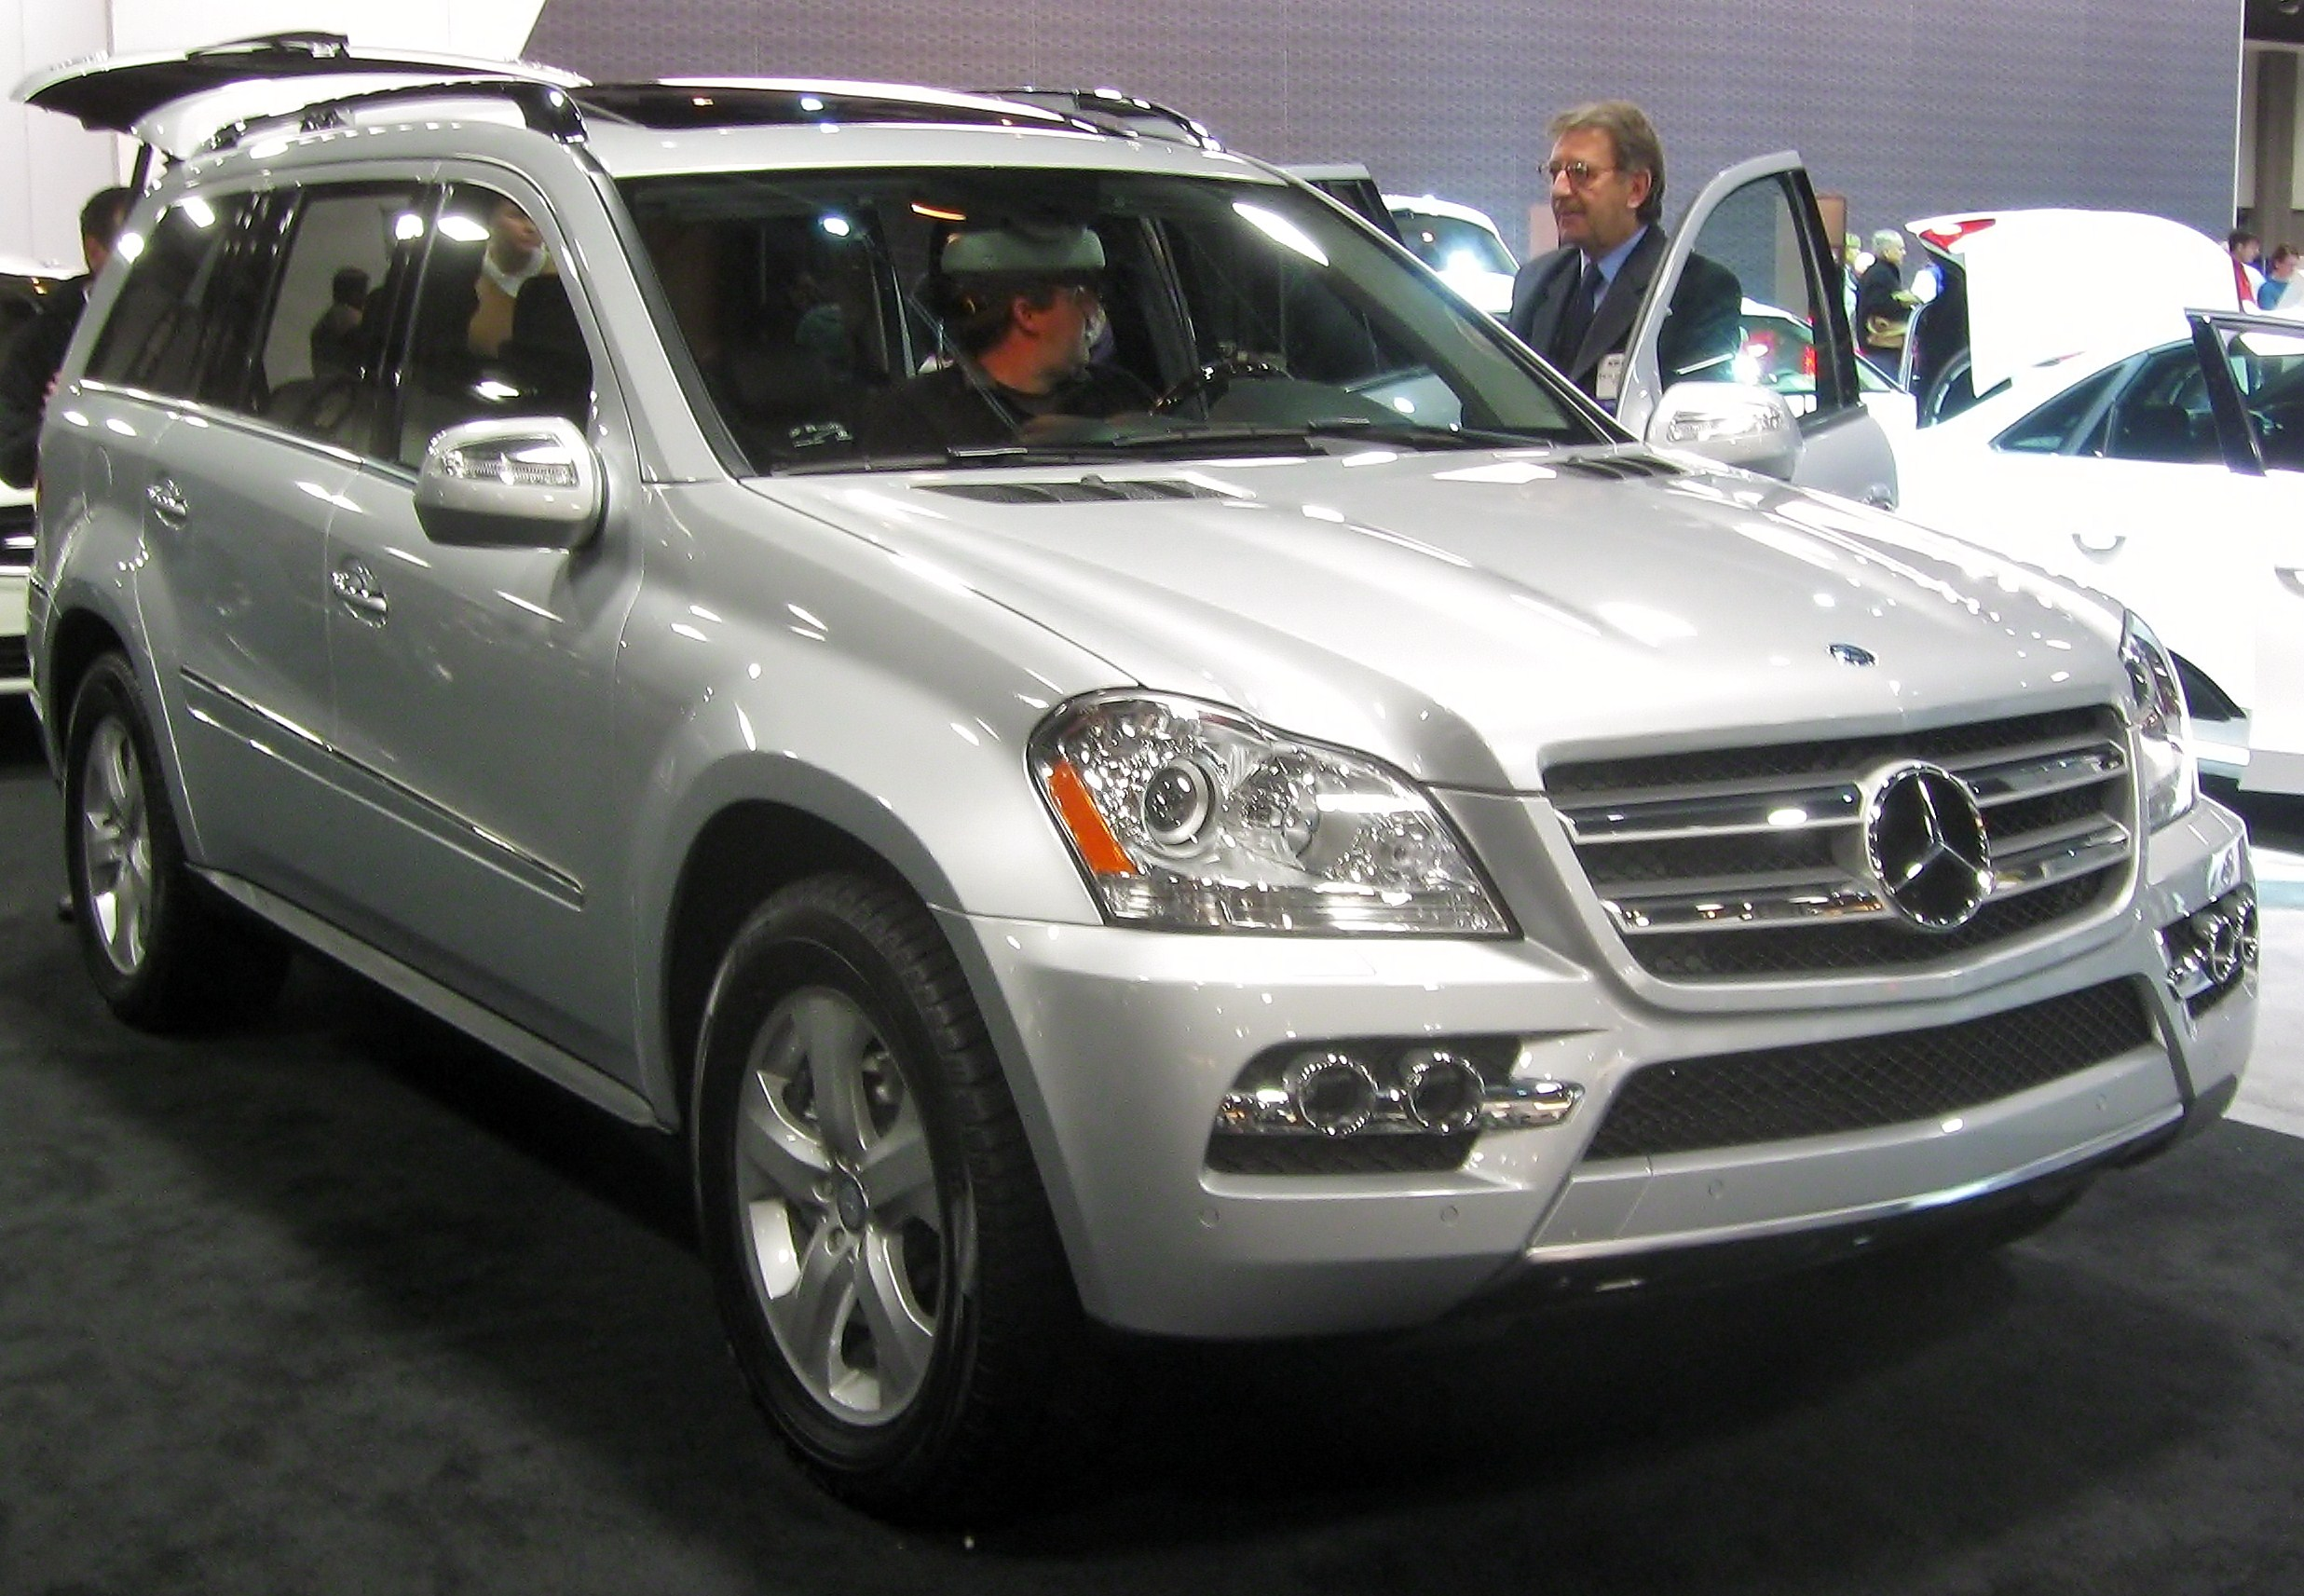 file 2010 mercedes benz gl 2010 wikimedia commons